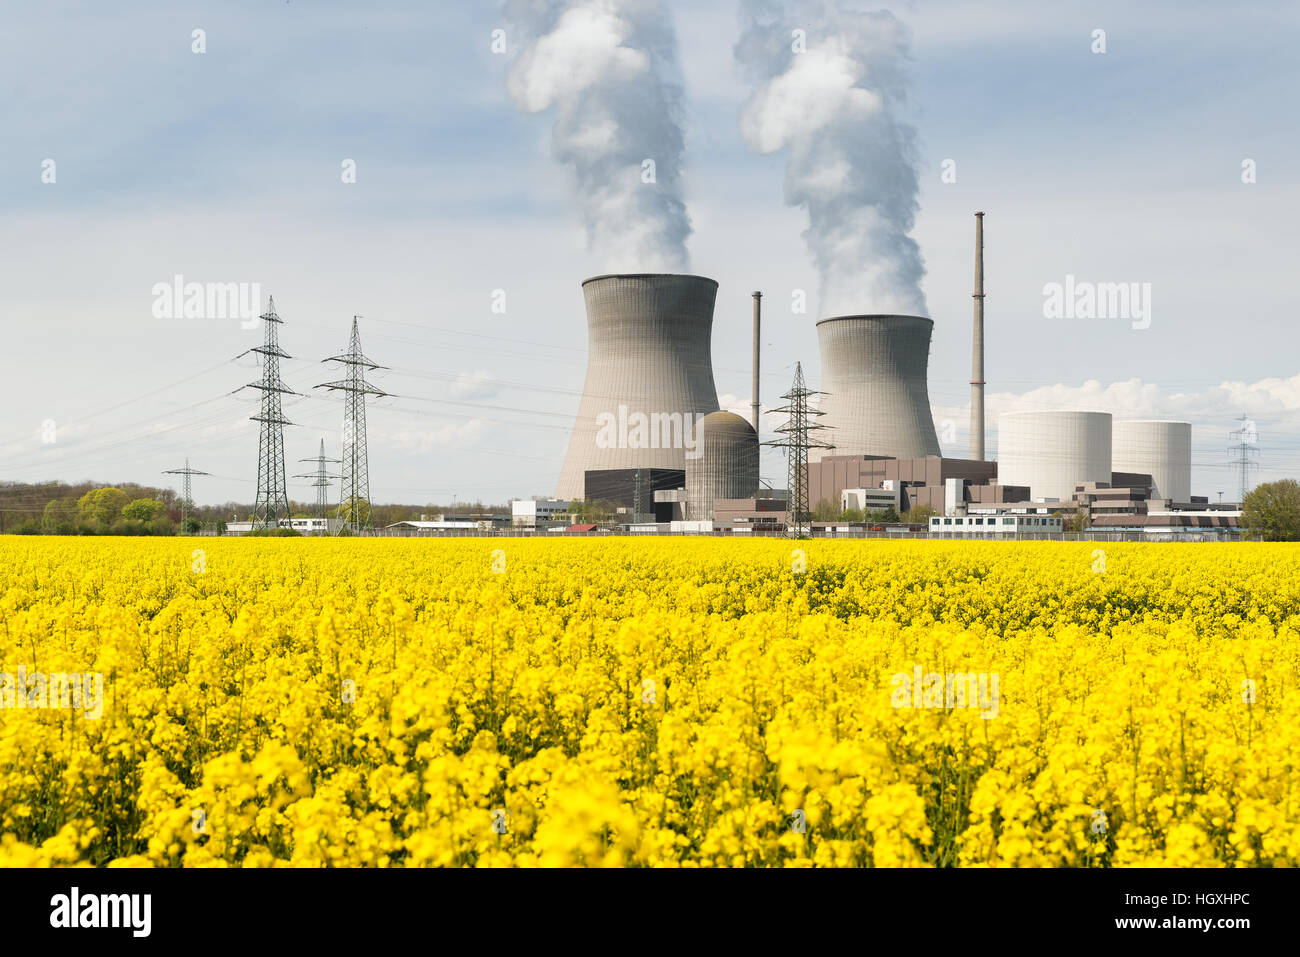 Nuclear power plant with yellow field and big blue clouds in Germany - Stock Image